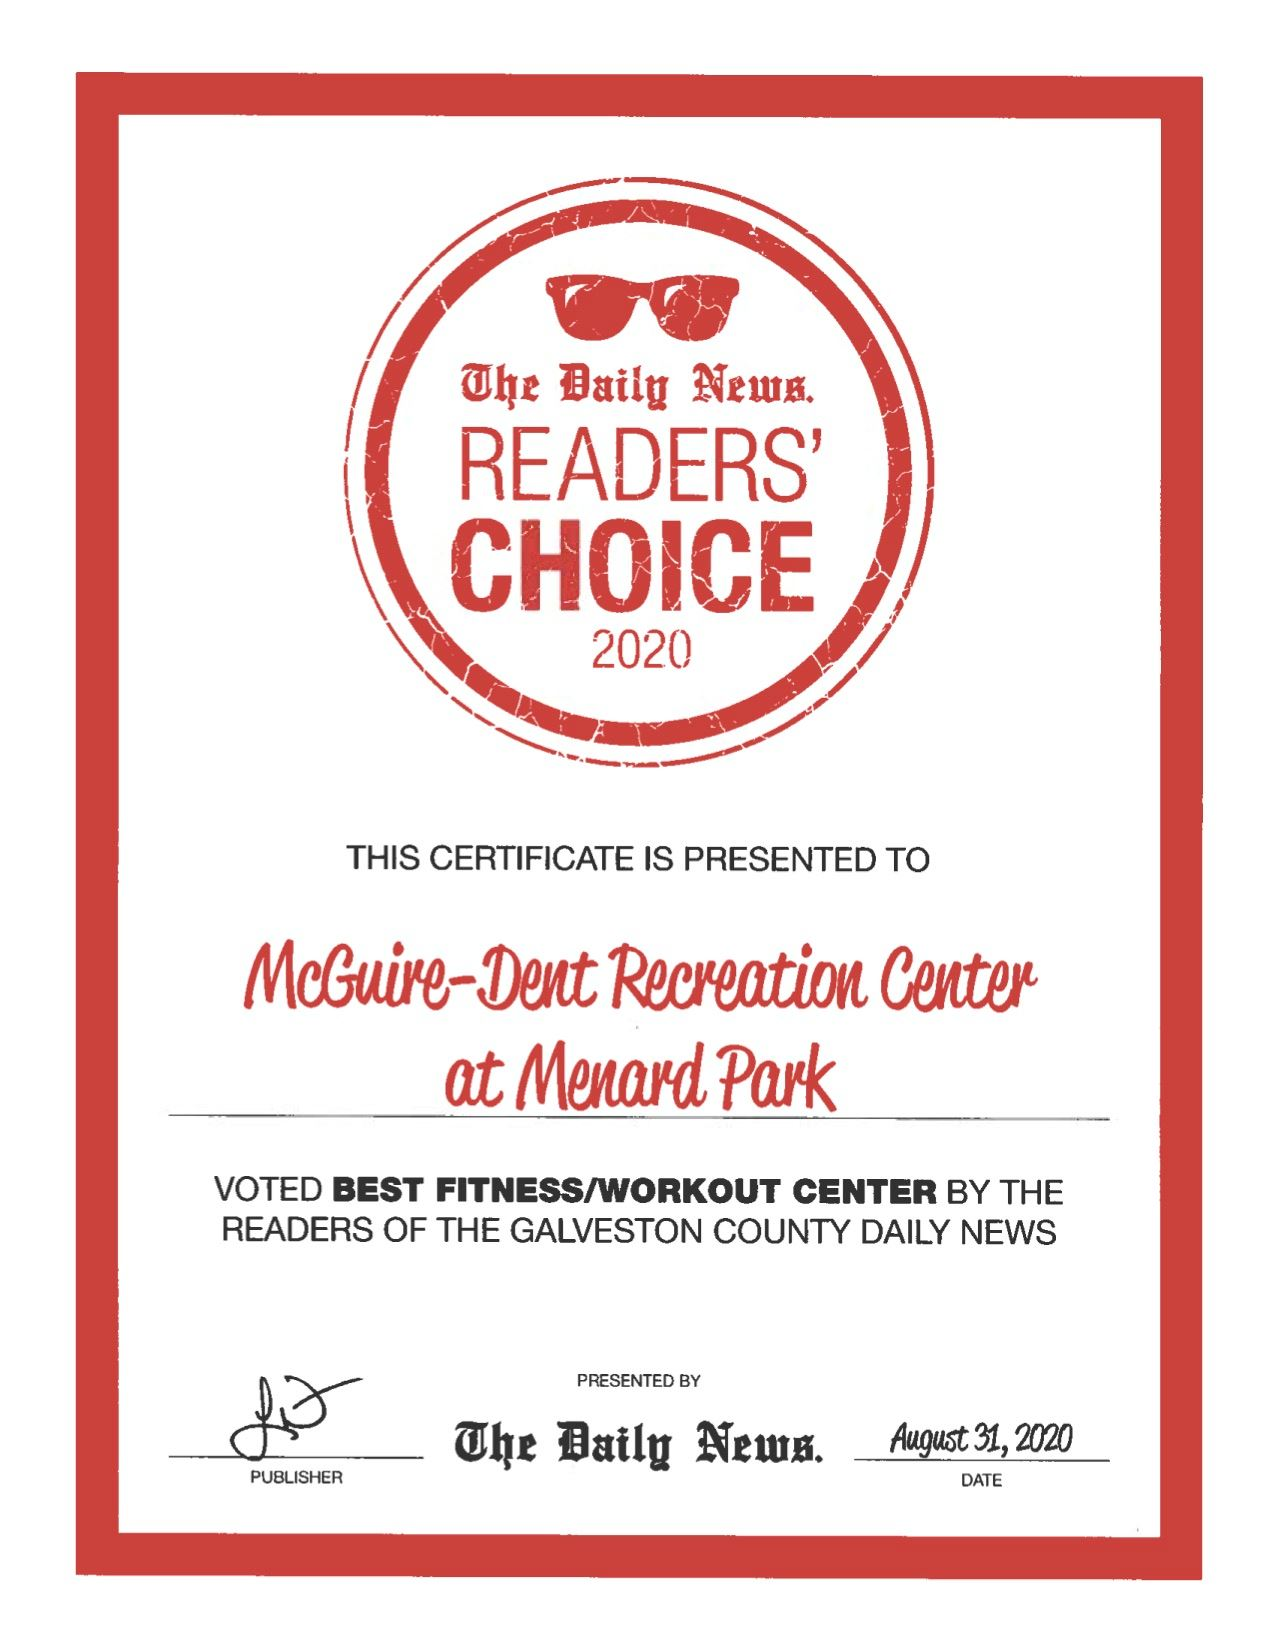 The Daily News Readers Choice Certificate